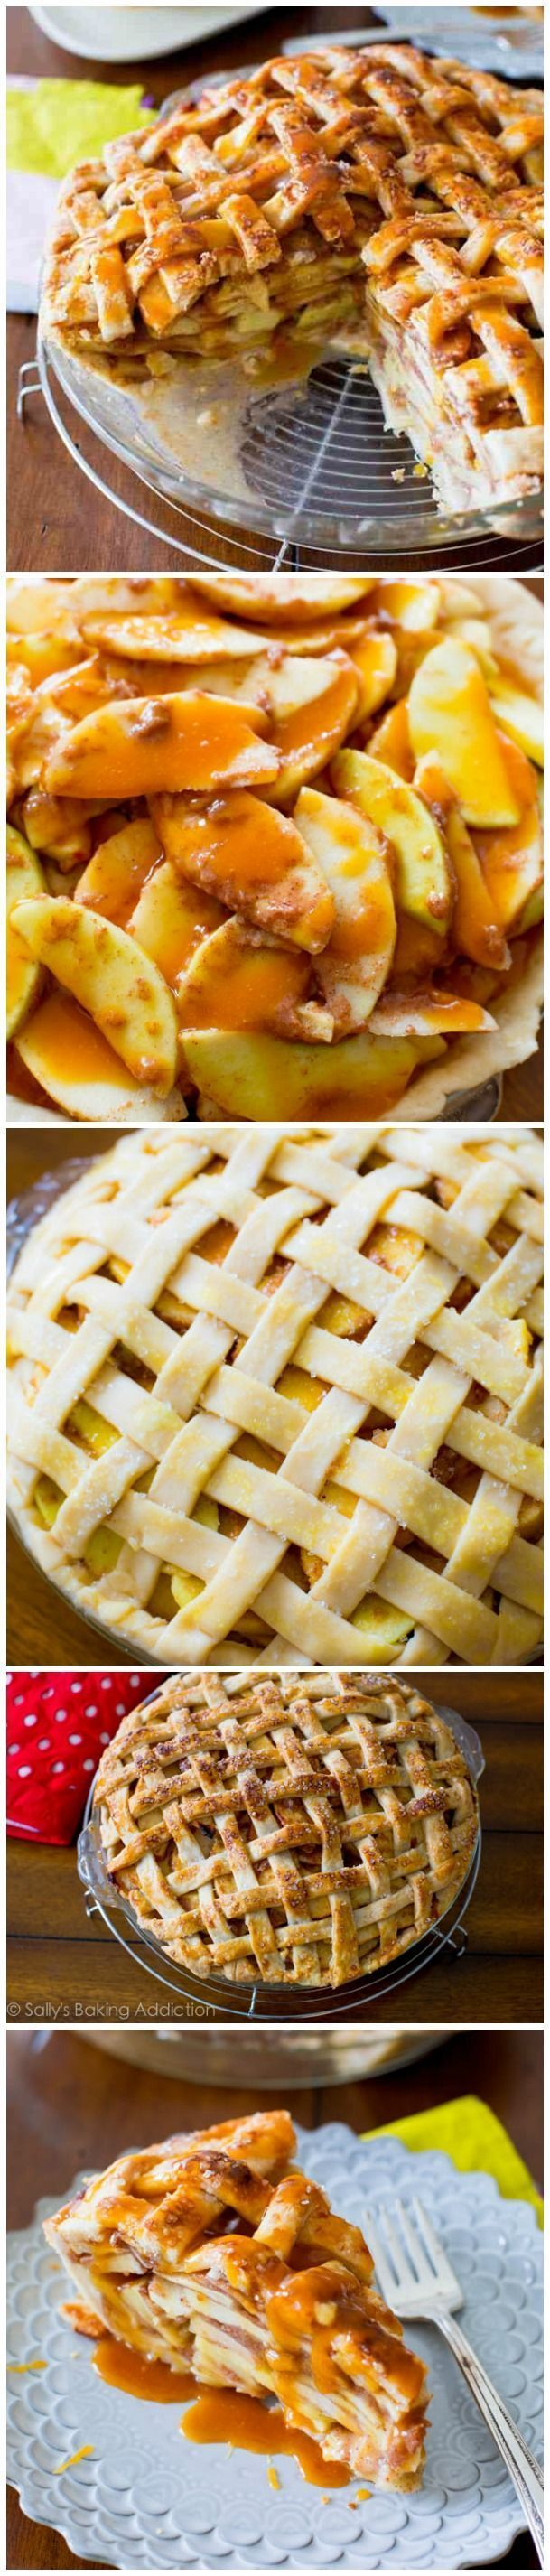 Want to rule Thanksgiving? Make this ridiculously delicious pie -- a classic lattice-topped all-American apple pie bubbling with salted caramel and gooey, cinnamon apples. Yeah.